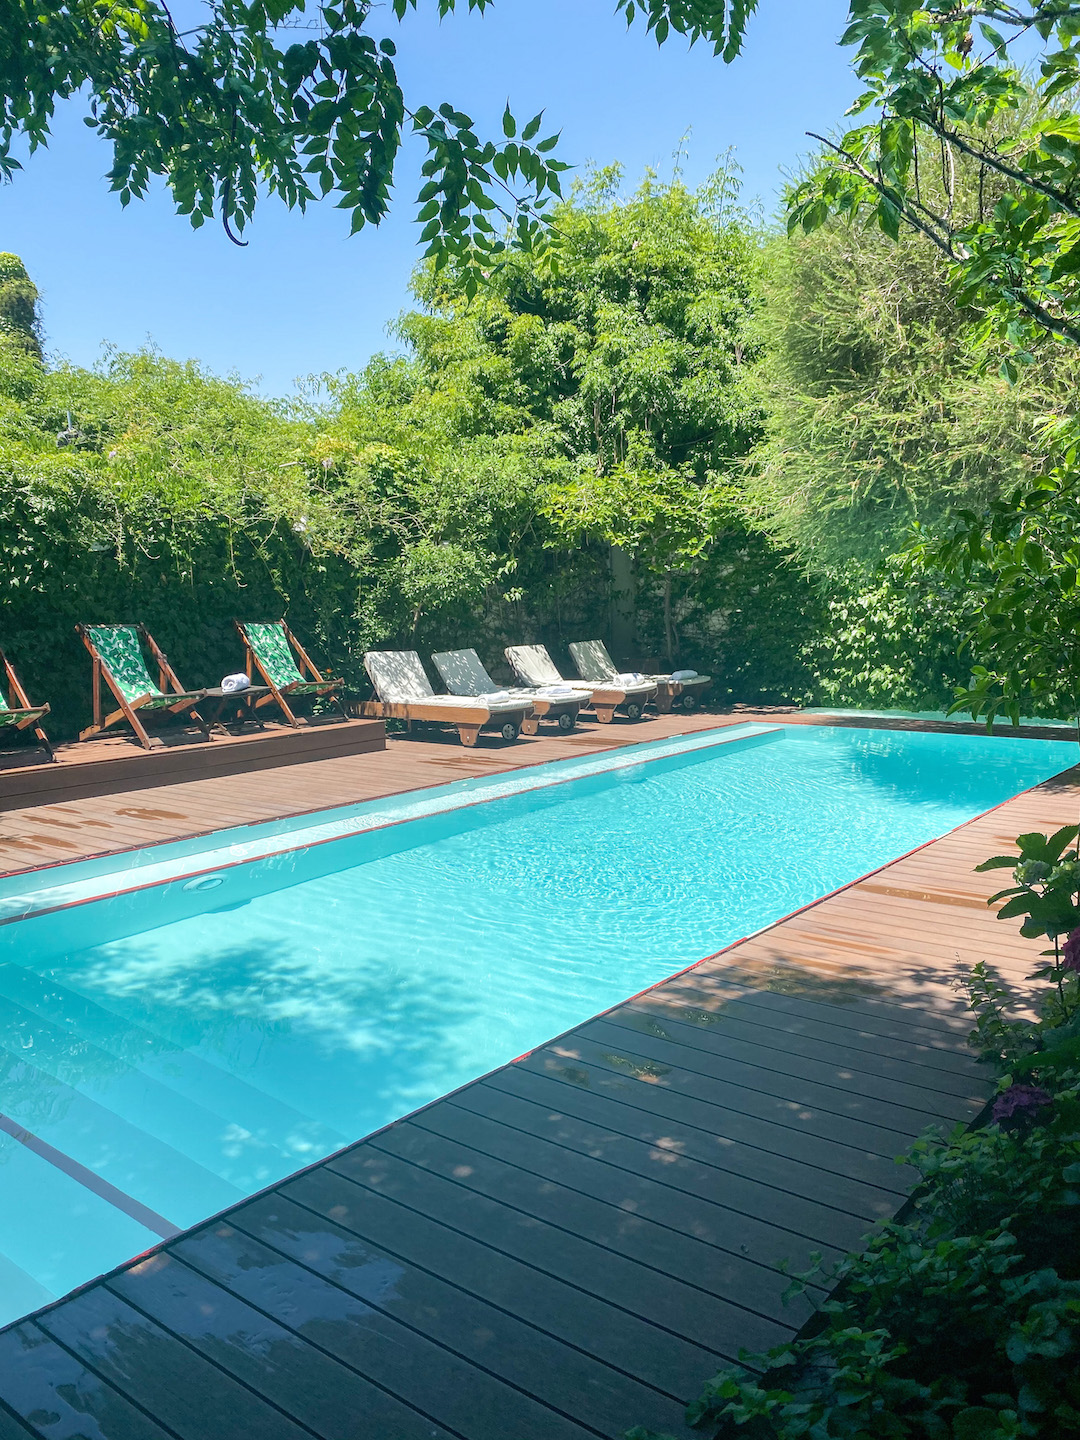 Her_Travel_Edit_Home_Hotel_Pool